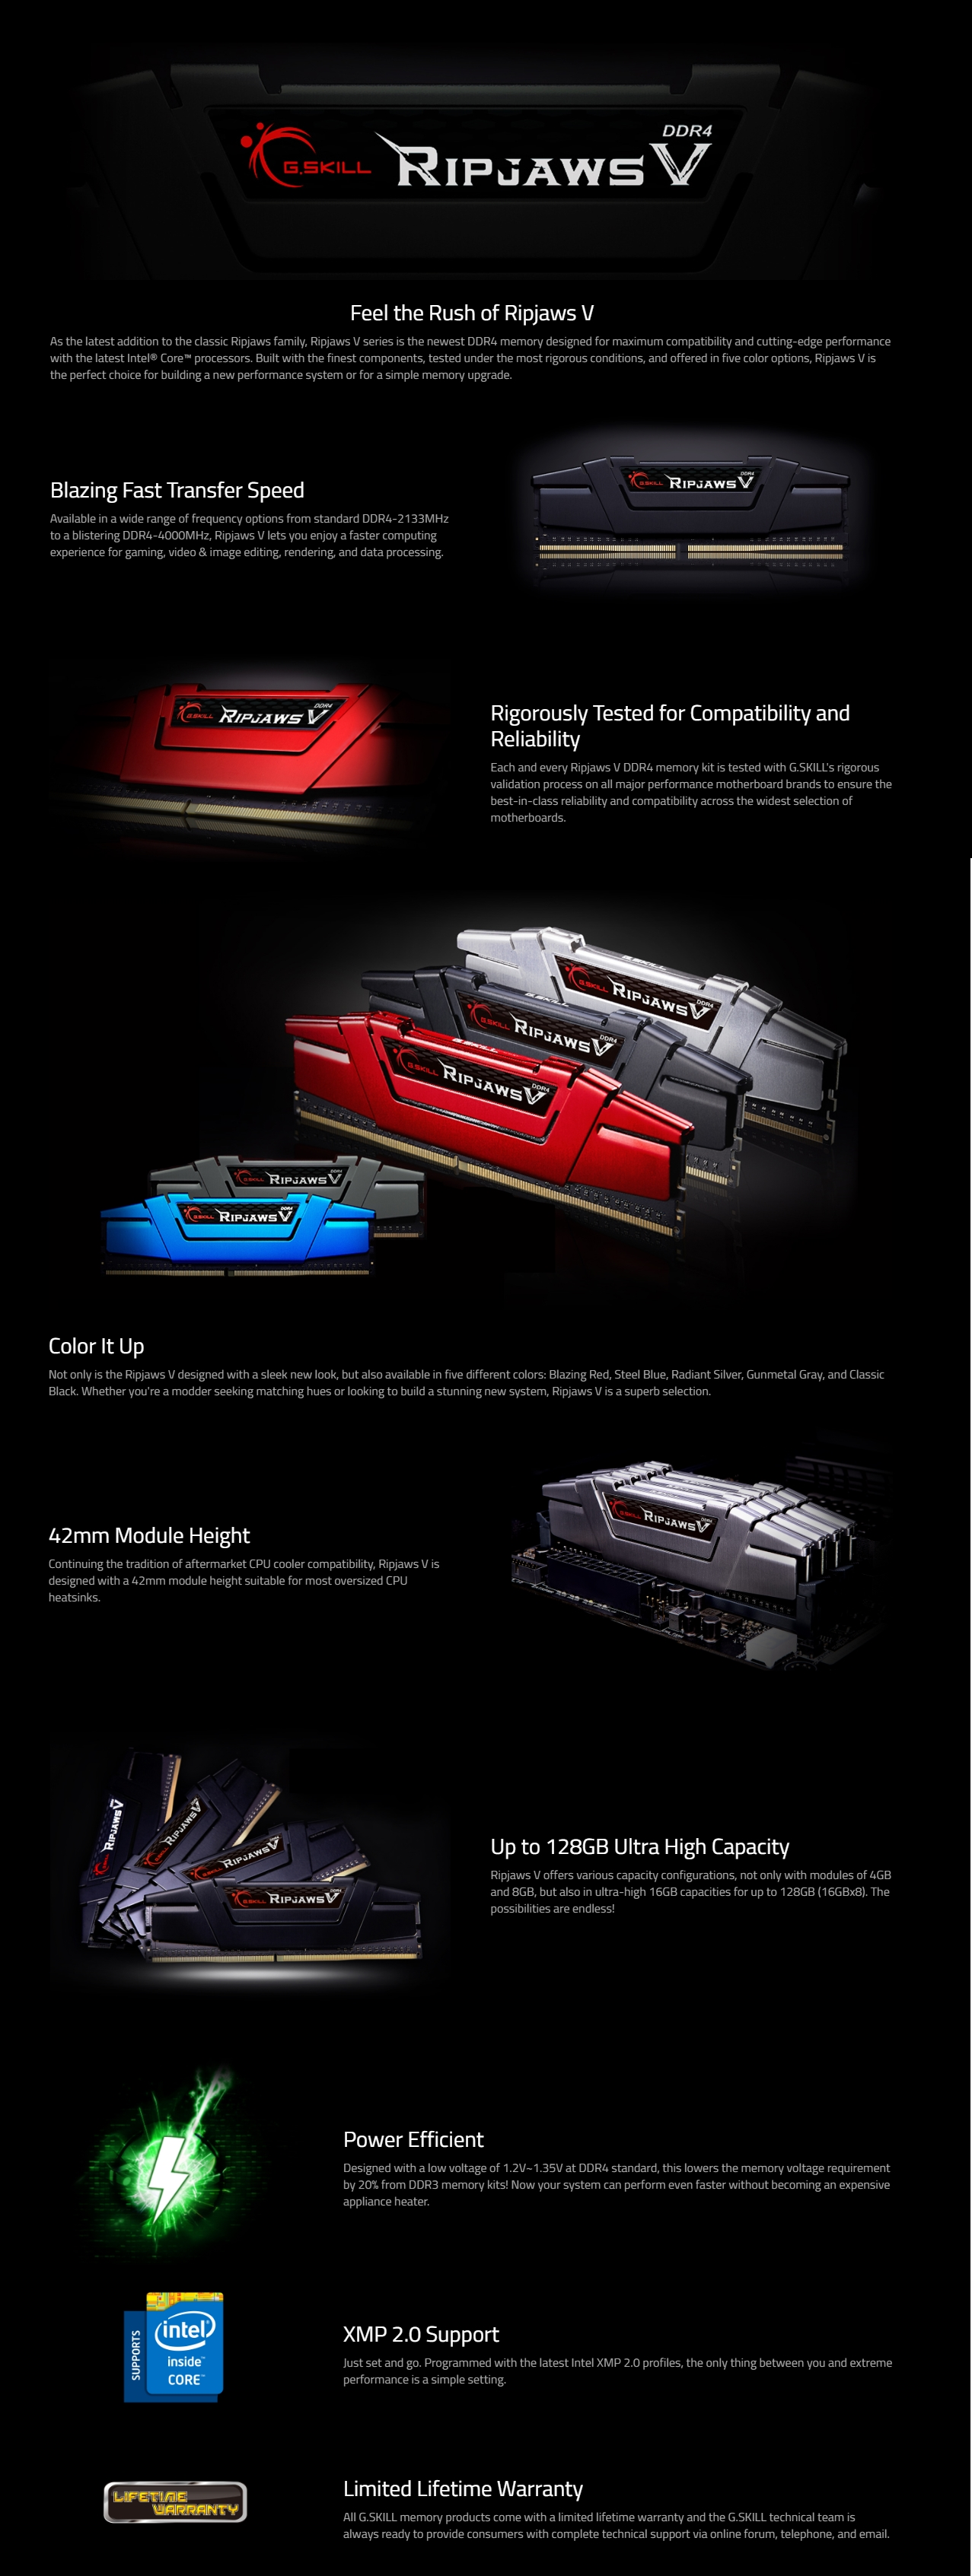 A large marketing image providing additional information about the product G.Skill 64GB Kit (2x32GB) DDR4 Ripjaws V C16 3200Mhz - Additional alt info not provided